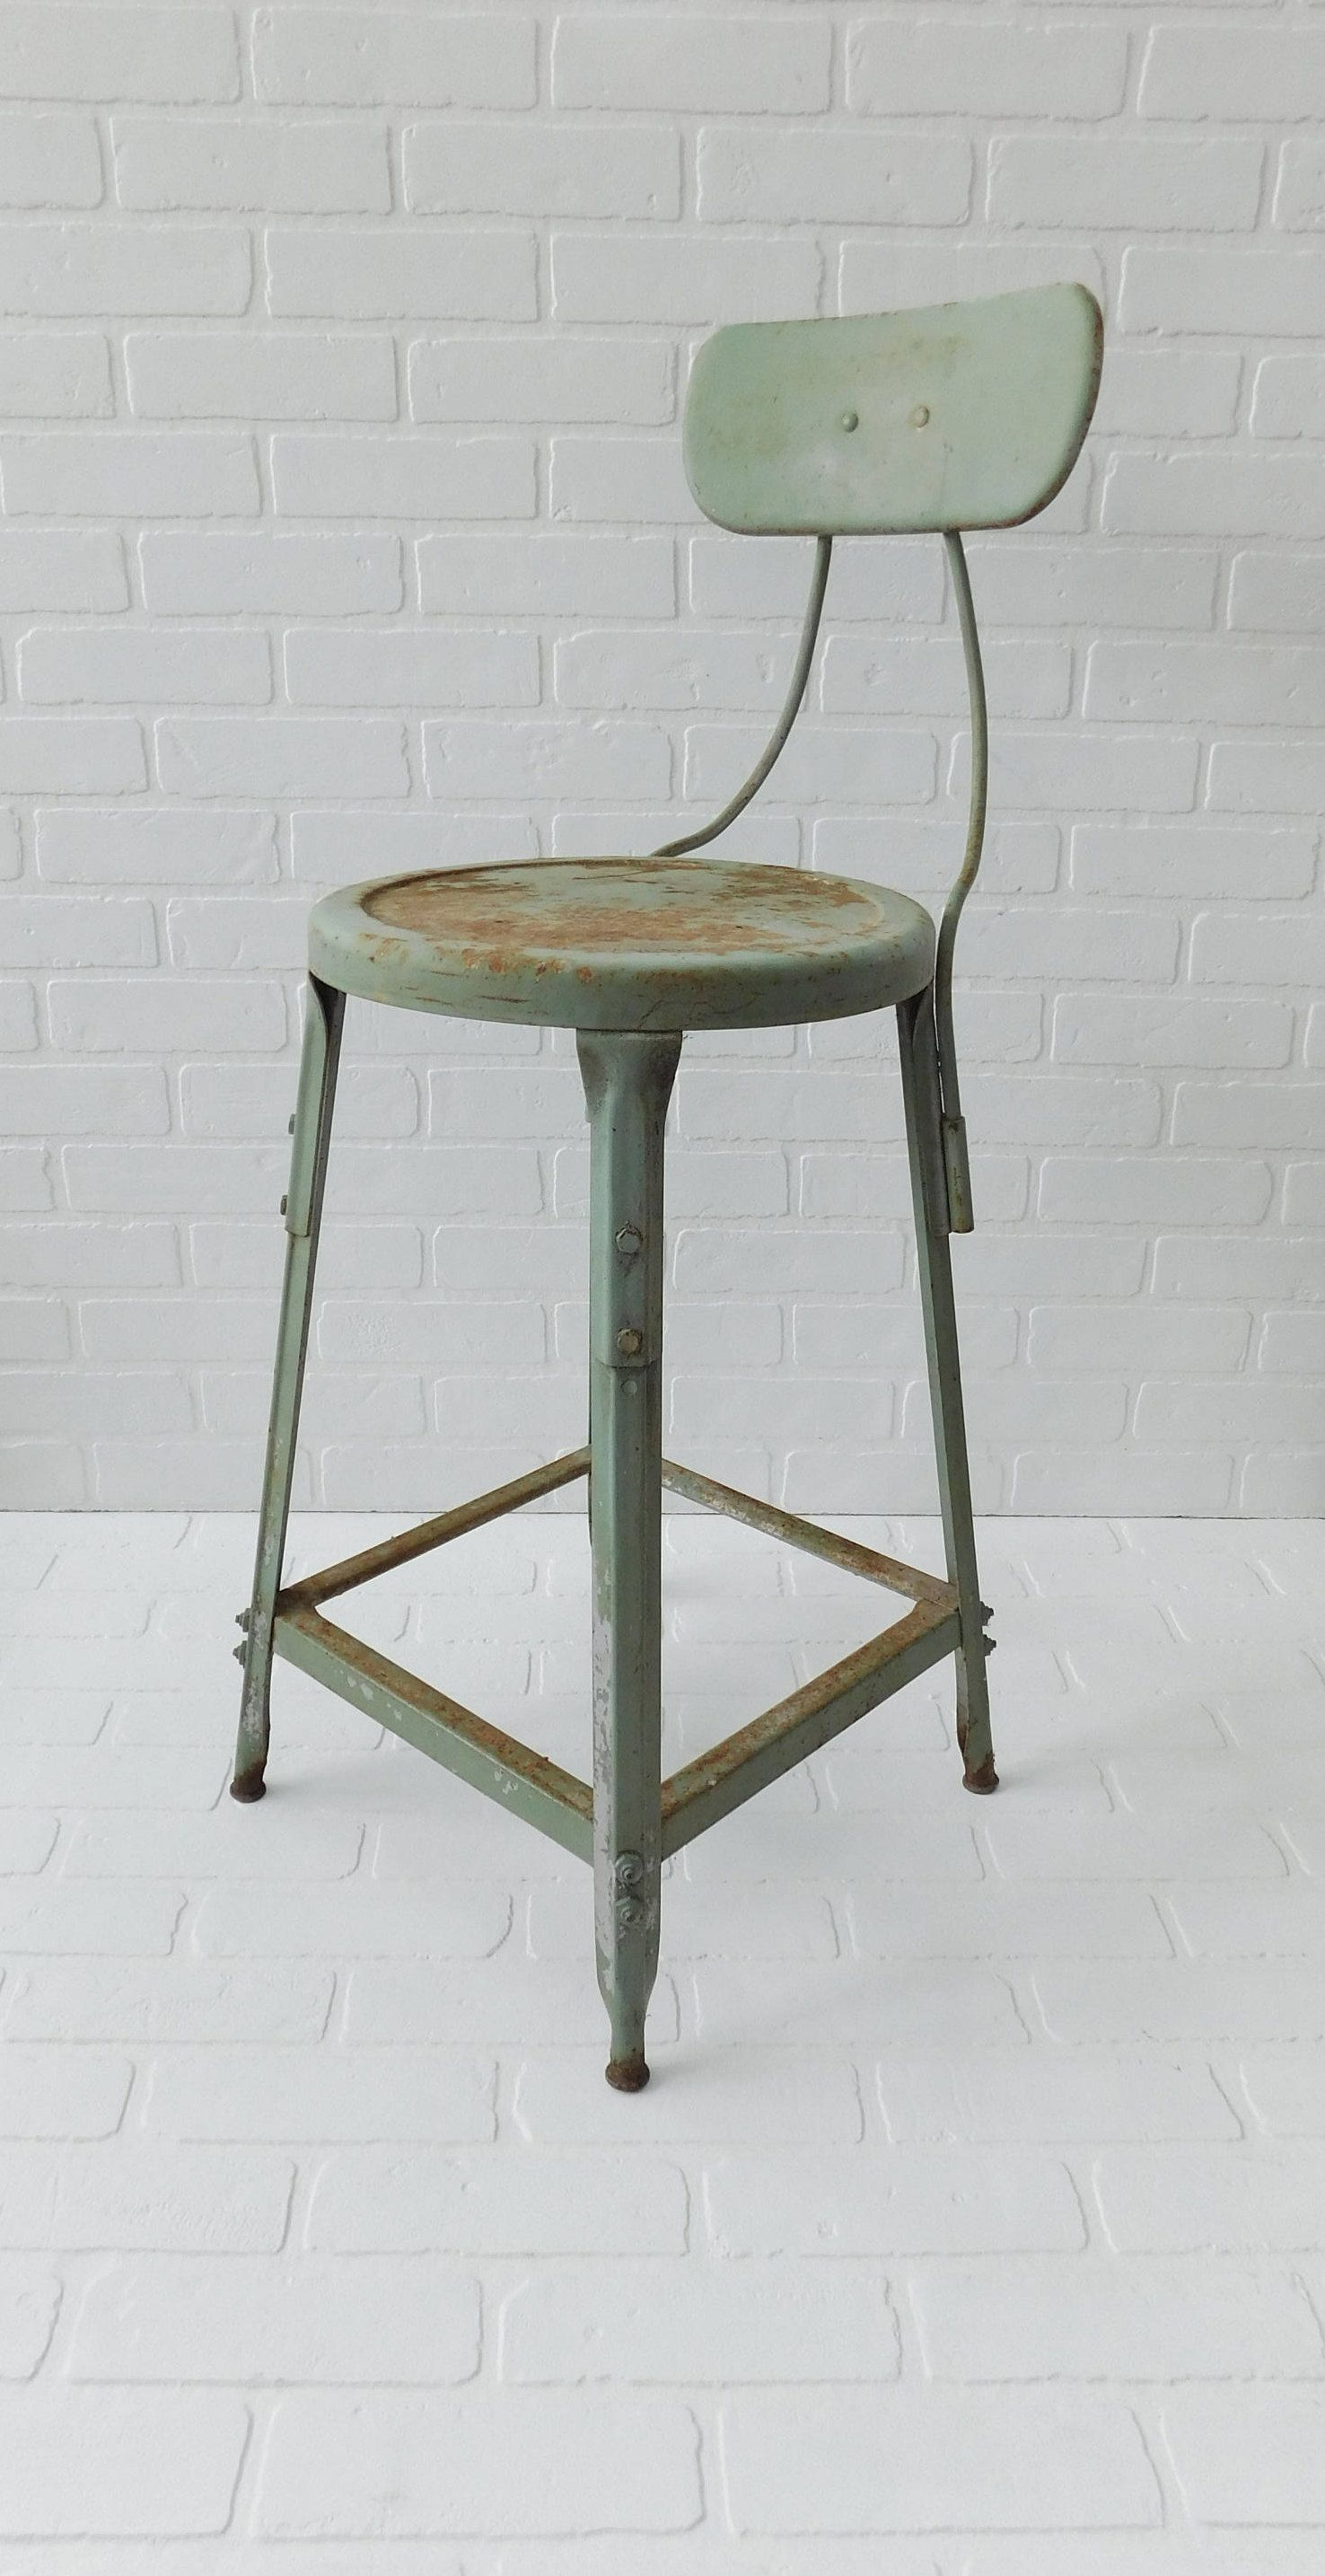 Vintage Industrial Bar Stool Measures 37 Inches In Height Seat